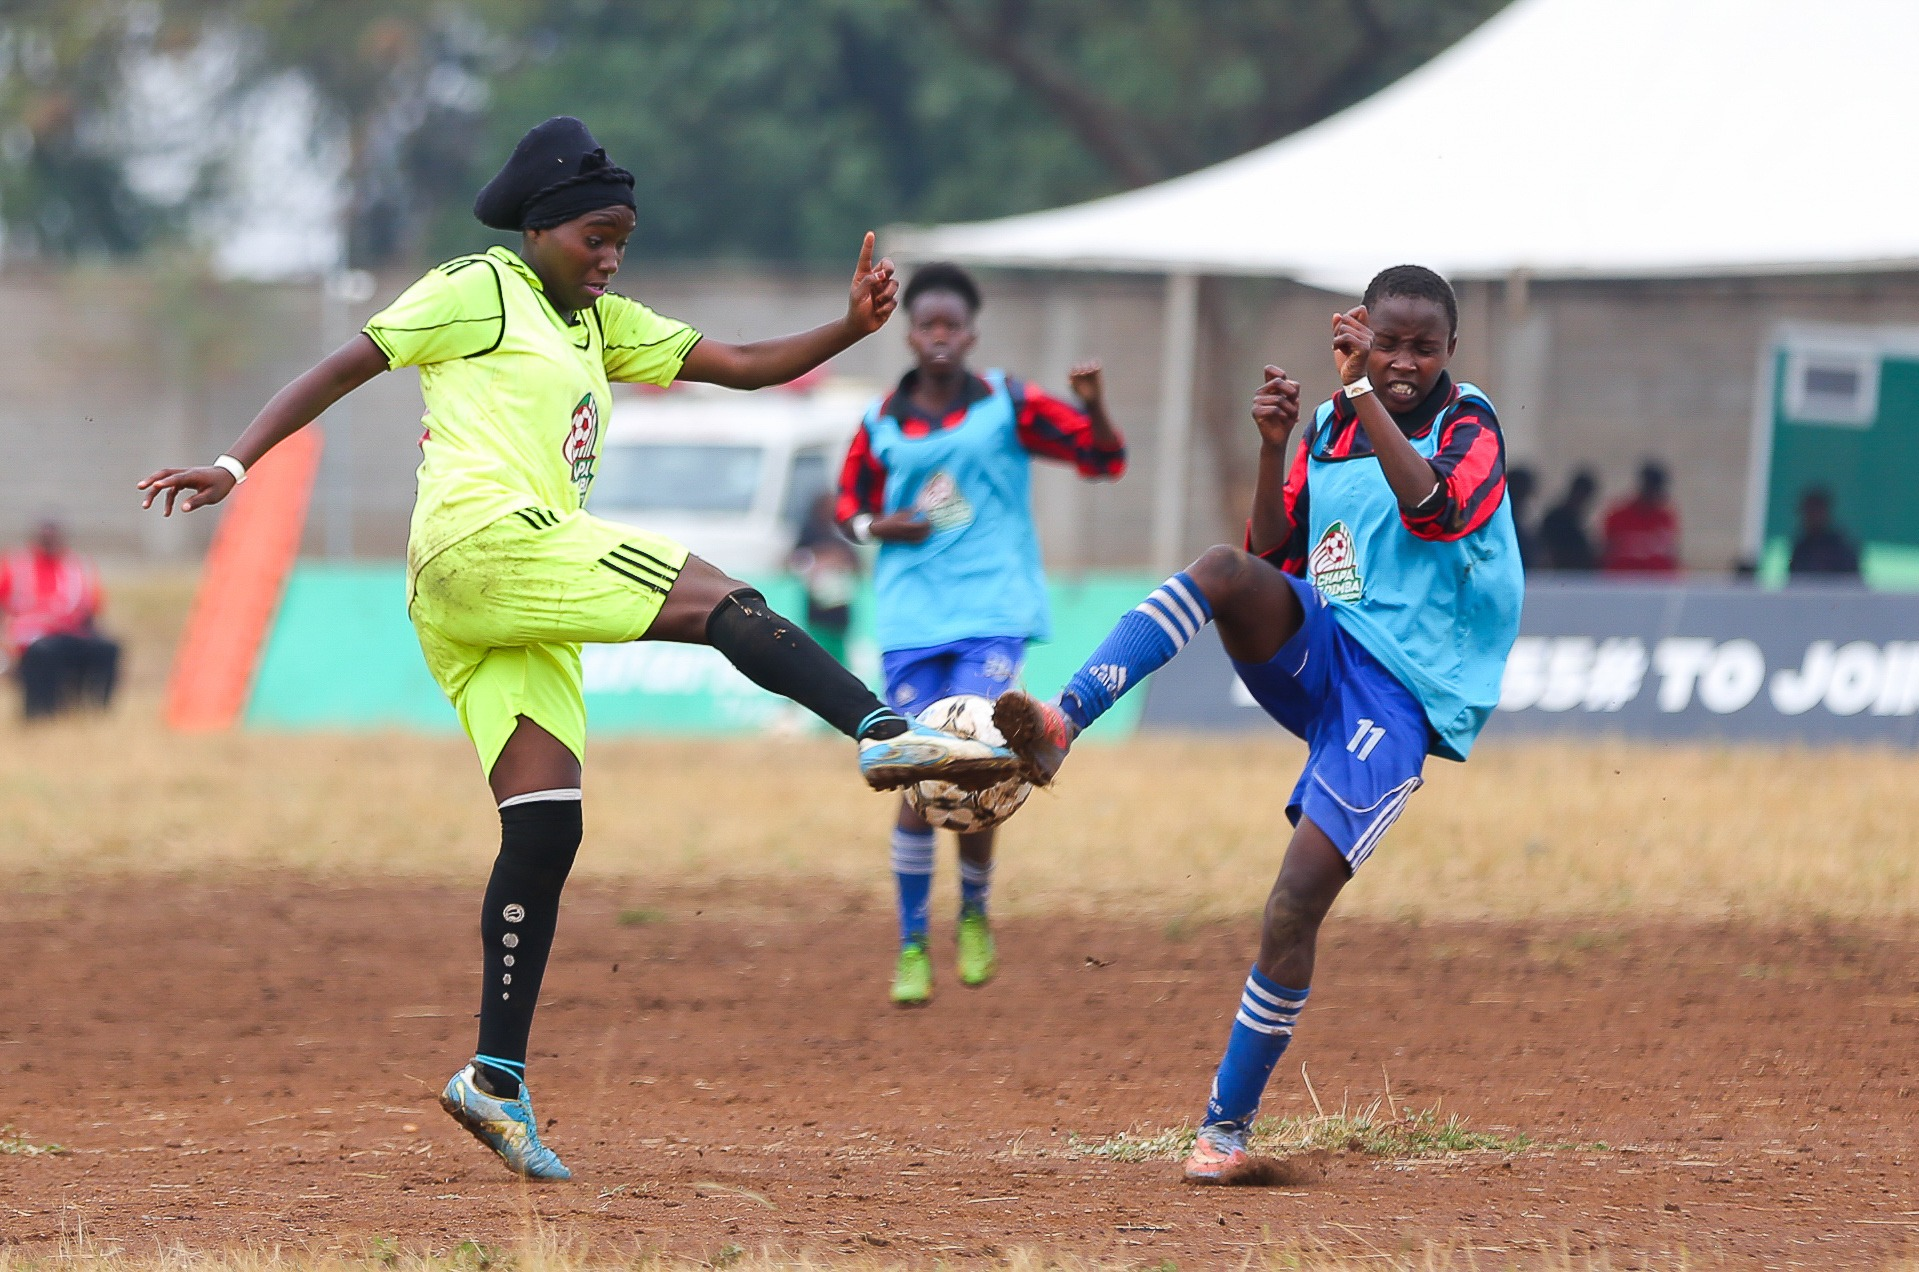 Jane Njeri (right) vies for the ball during the Central Region Chapa Dimba Na Safaricom semifinals staged at the Thika Technical Training Institute on March 3.